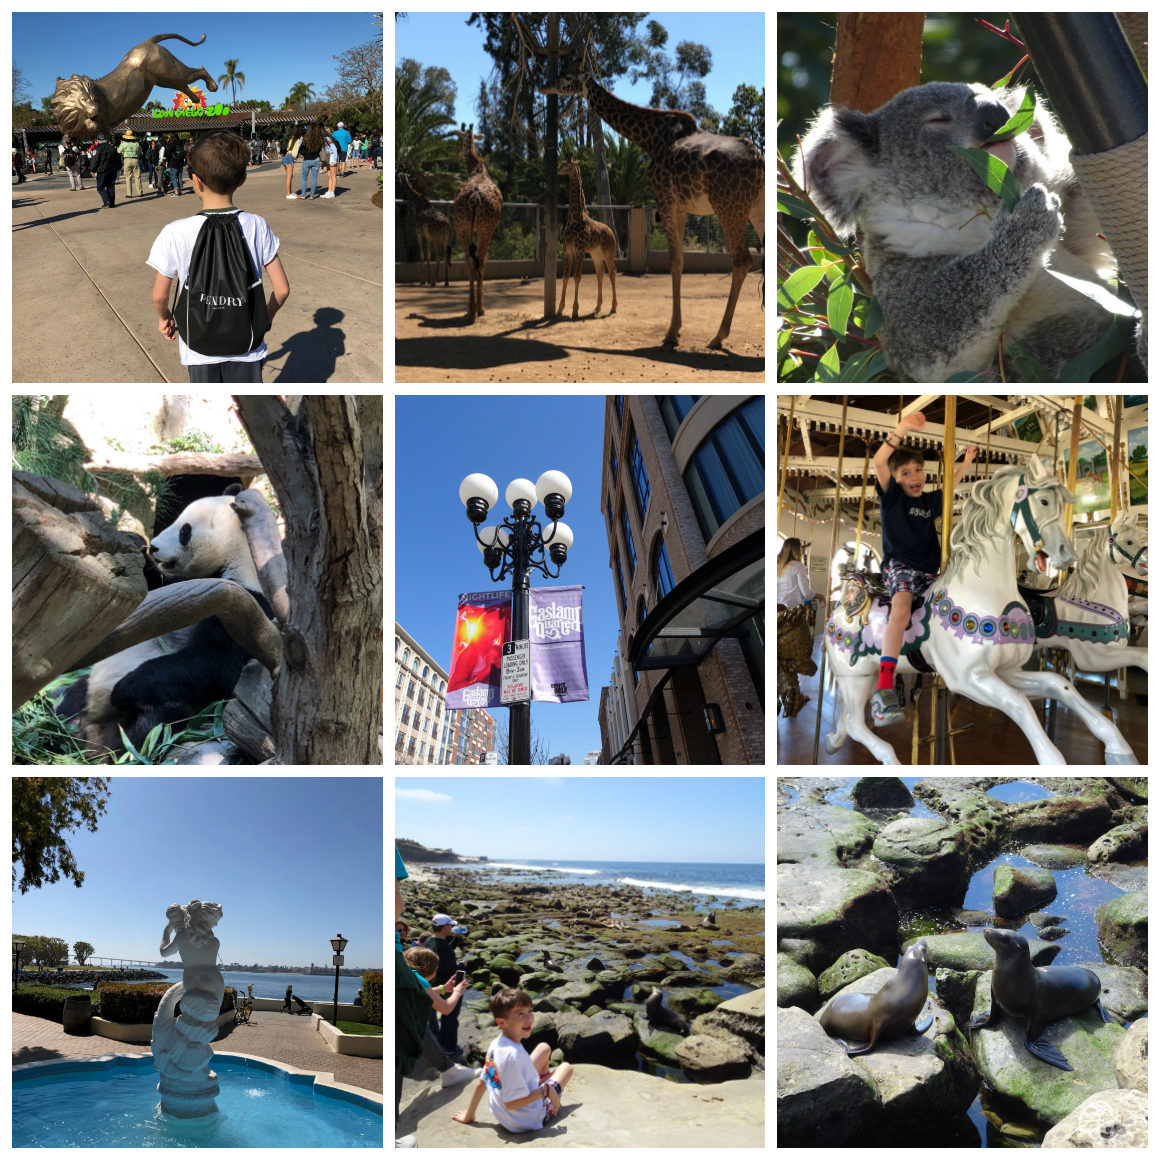 The Best Stuff to see and do in San Diego with kids